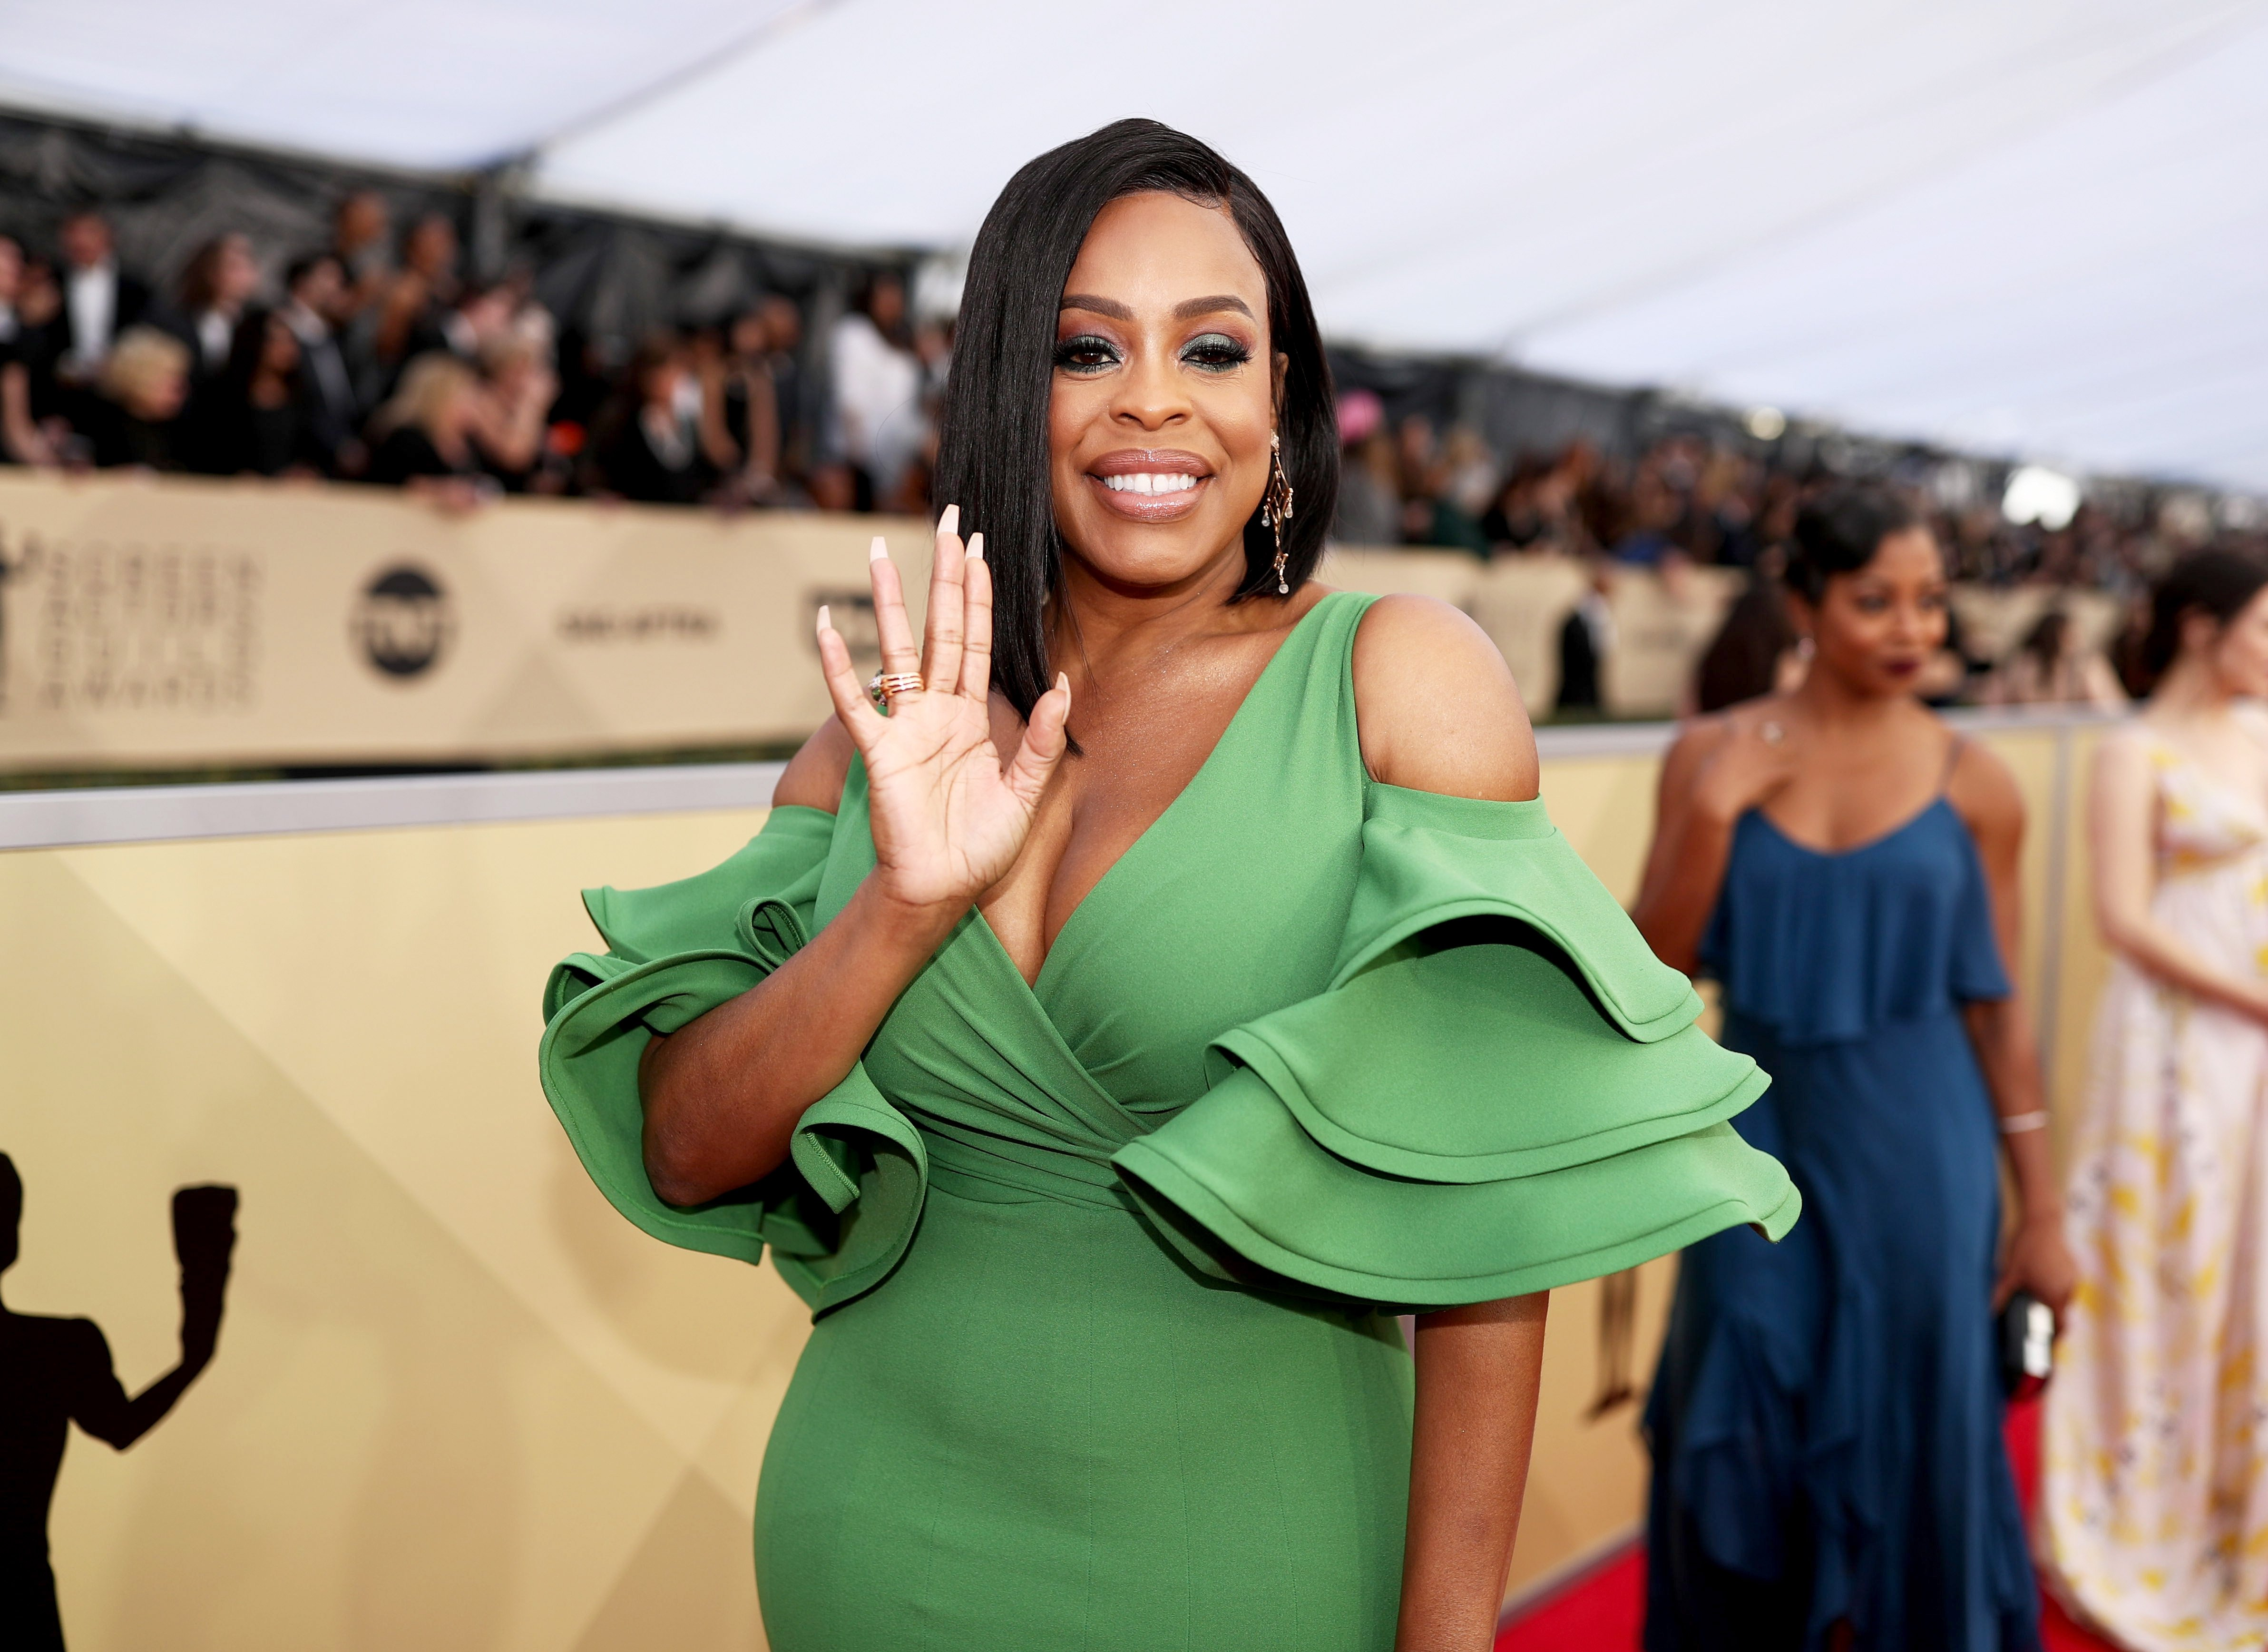 Niecy Nash at the 24th Annual Screen Actors Guild Awards at The Shrine Auditorium on January 21, 2018 in Los Angeles, California.|Source: Getty Images